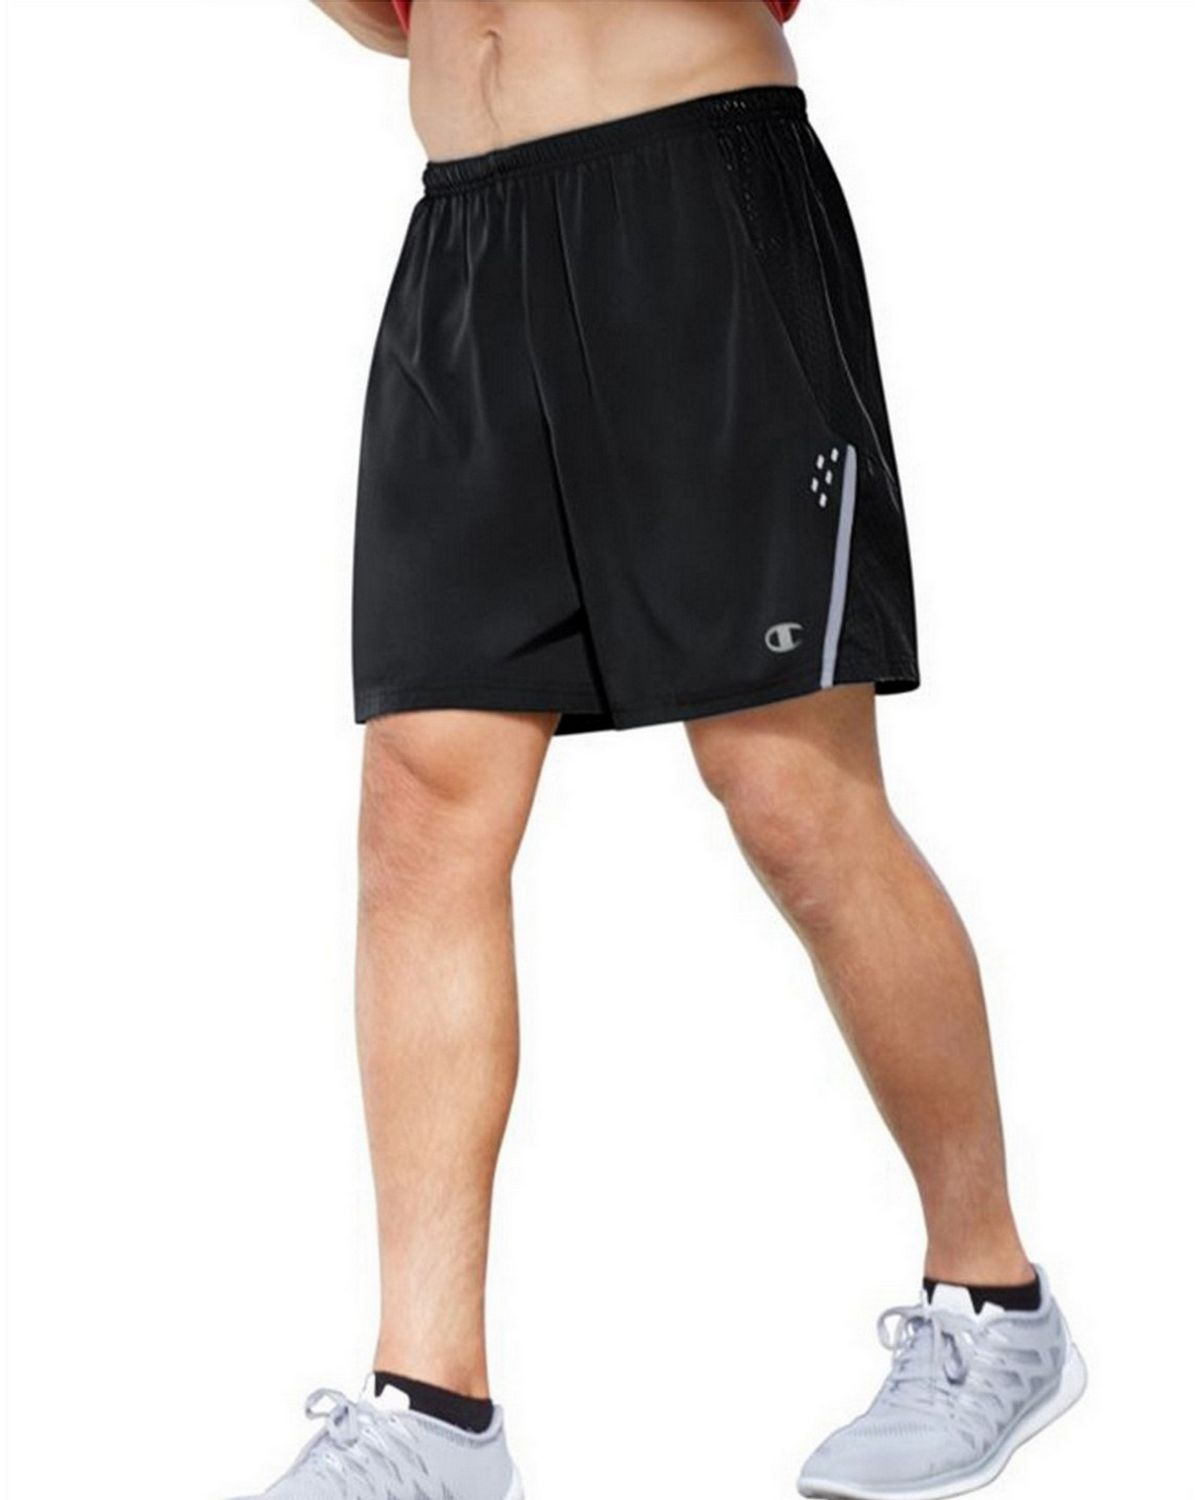 Champion 88898 Mens Marathon Shorts - Black/Stealth - S 88898